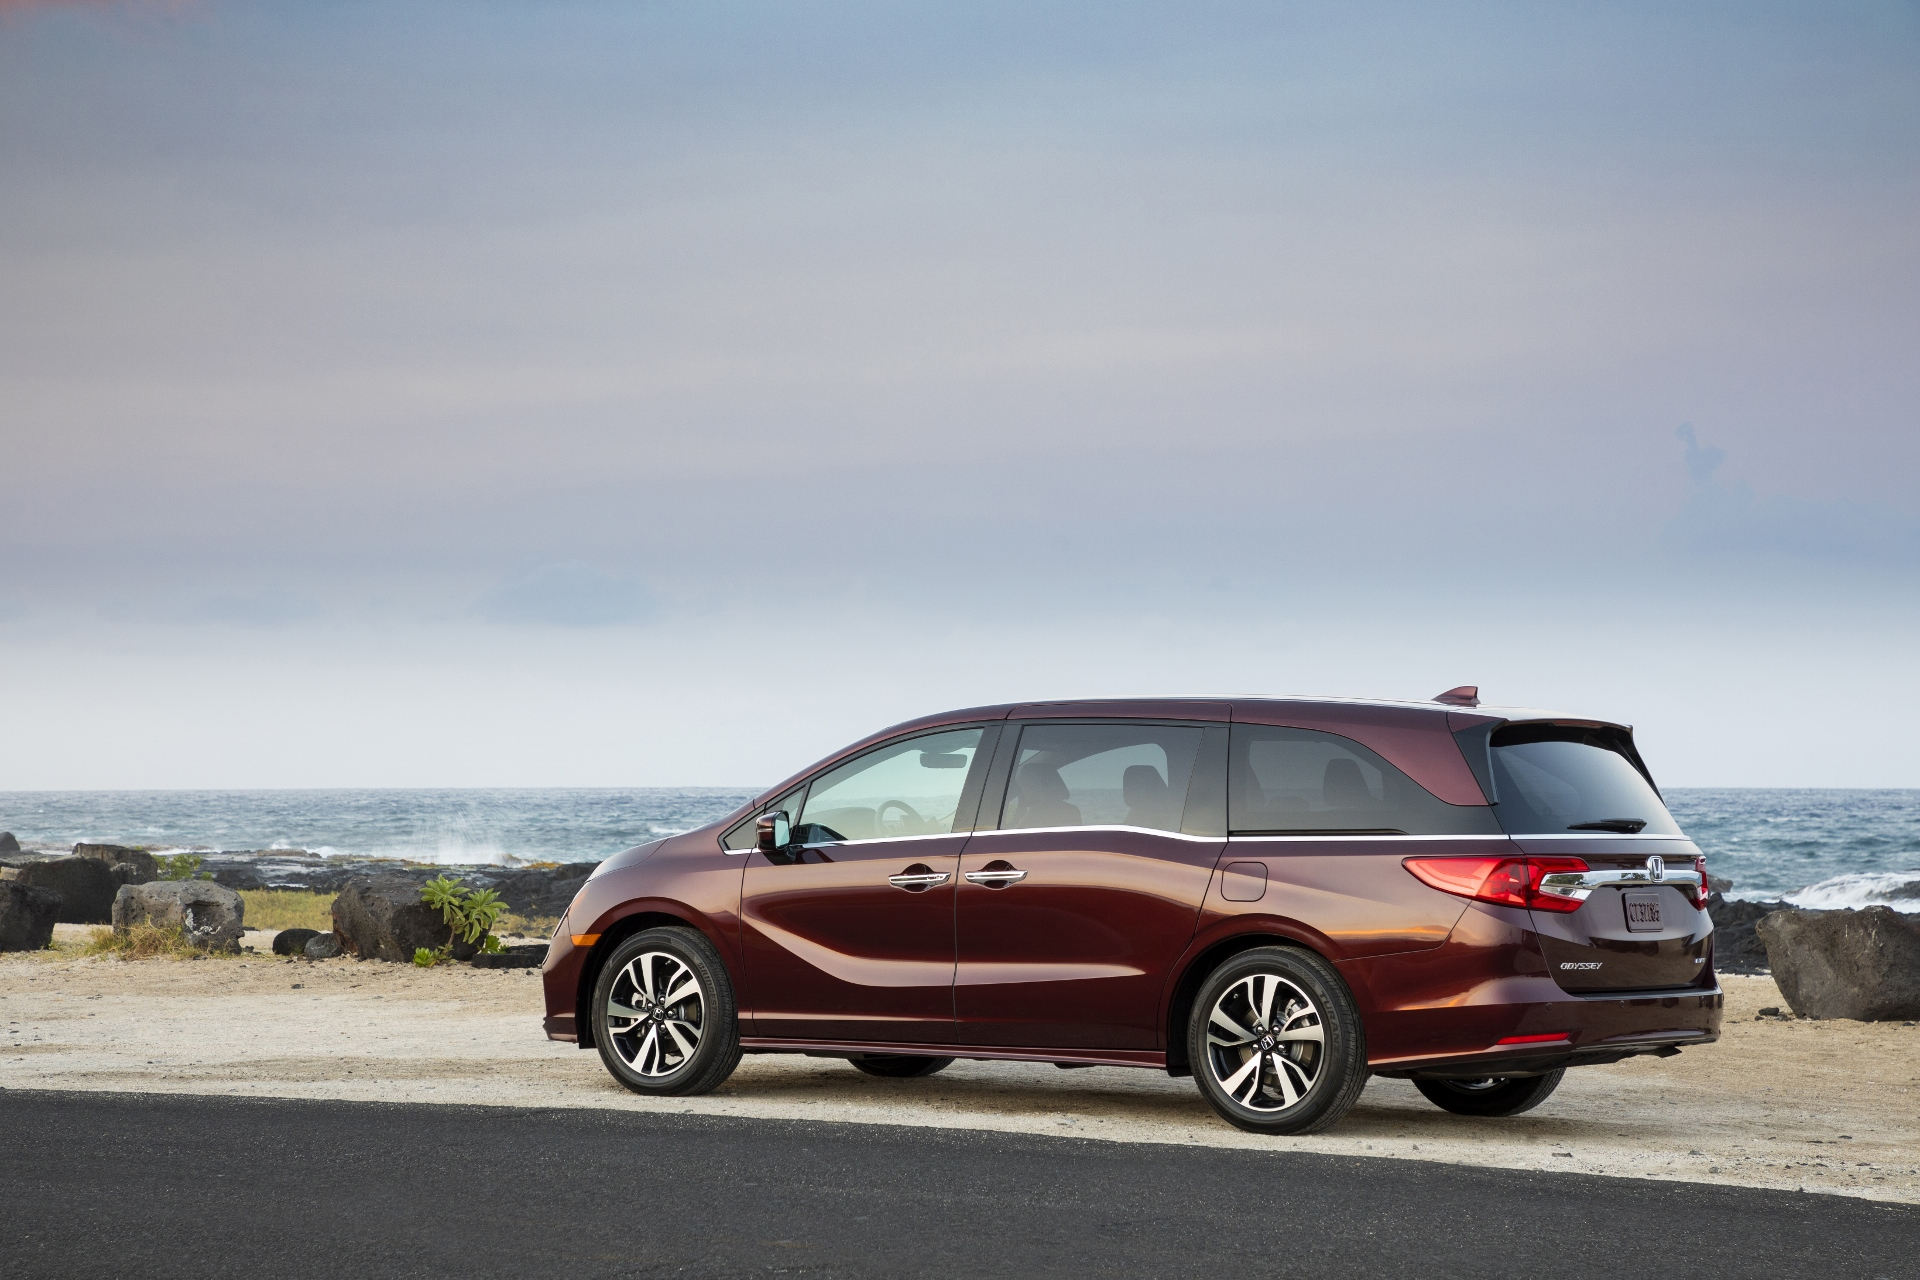 2018 Honda Odyssey priced, 2018 Genesis G80 driven, Hydrogen